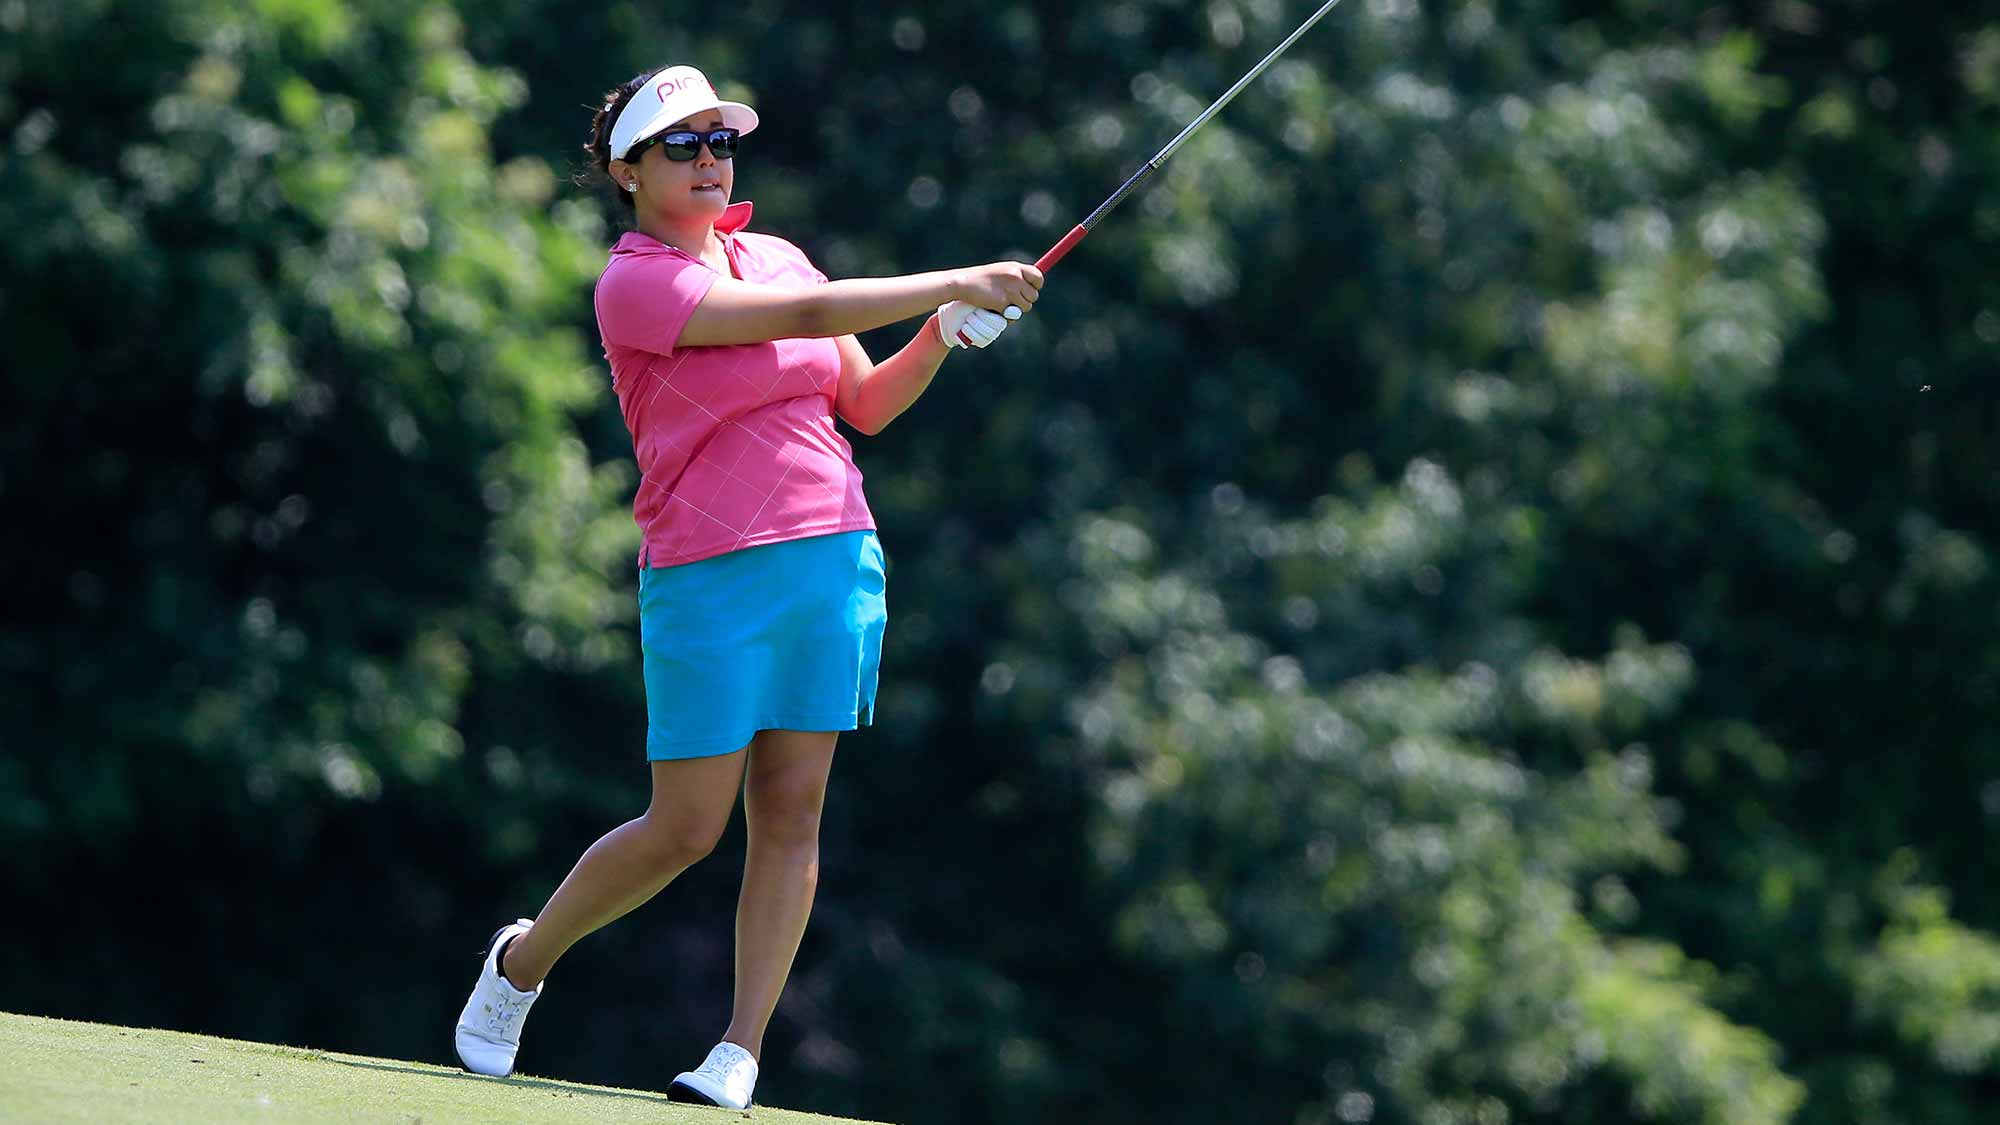 Jane Park of the United States plays a shot on the fifth hole during the second round of the U.S. Women's Open at Lancaster Country Club